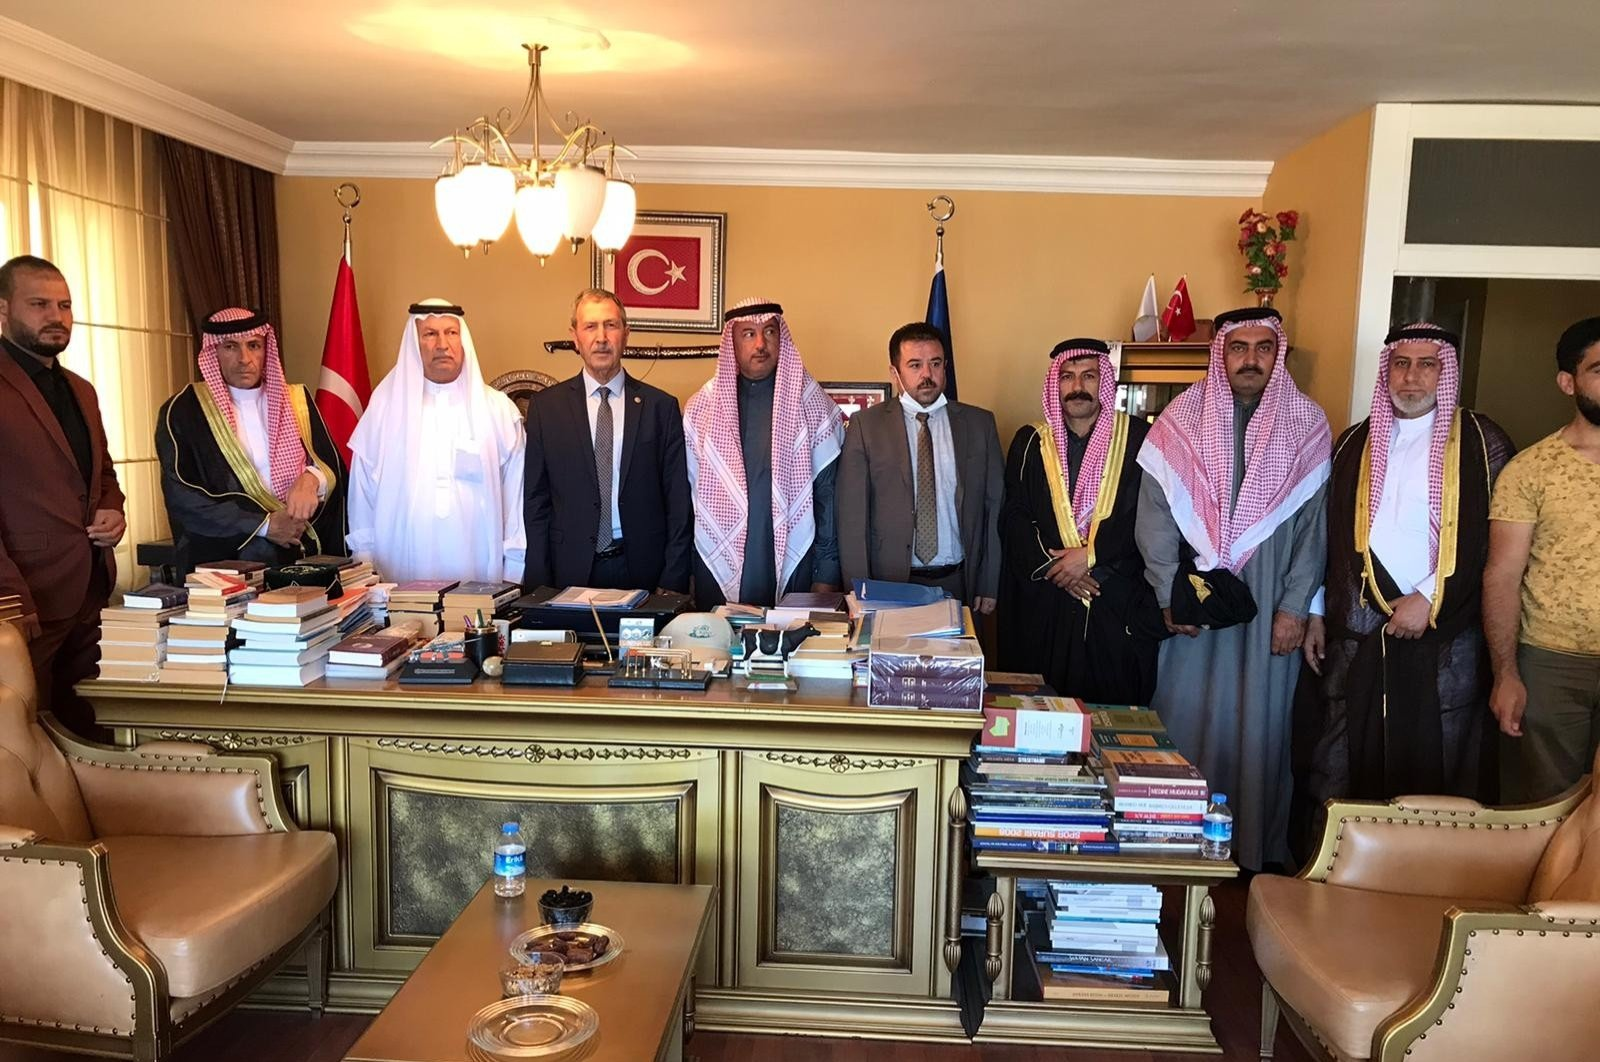 Former Justice and Development Party (AK Party) lawmaker Mahmut Kaplan (C) with Syrian tribe leaders in the capital Ankara, Aug. 15, 2020. (IHA Photo)